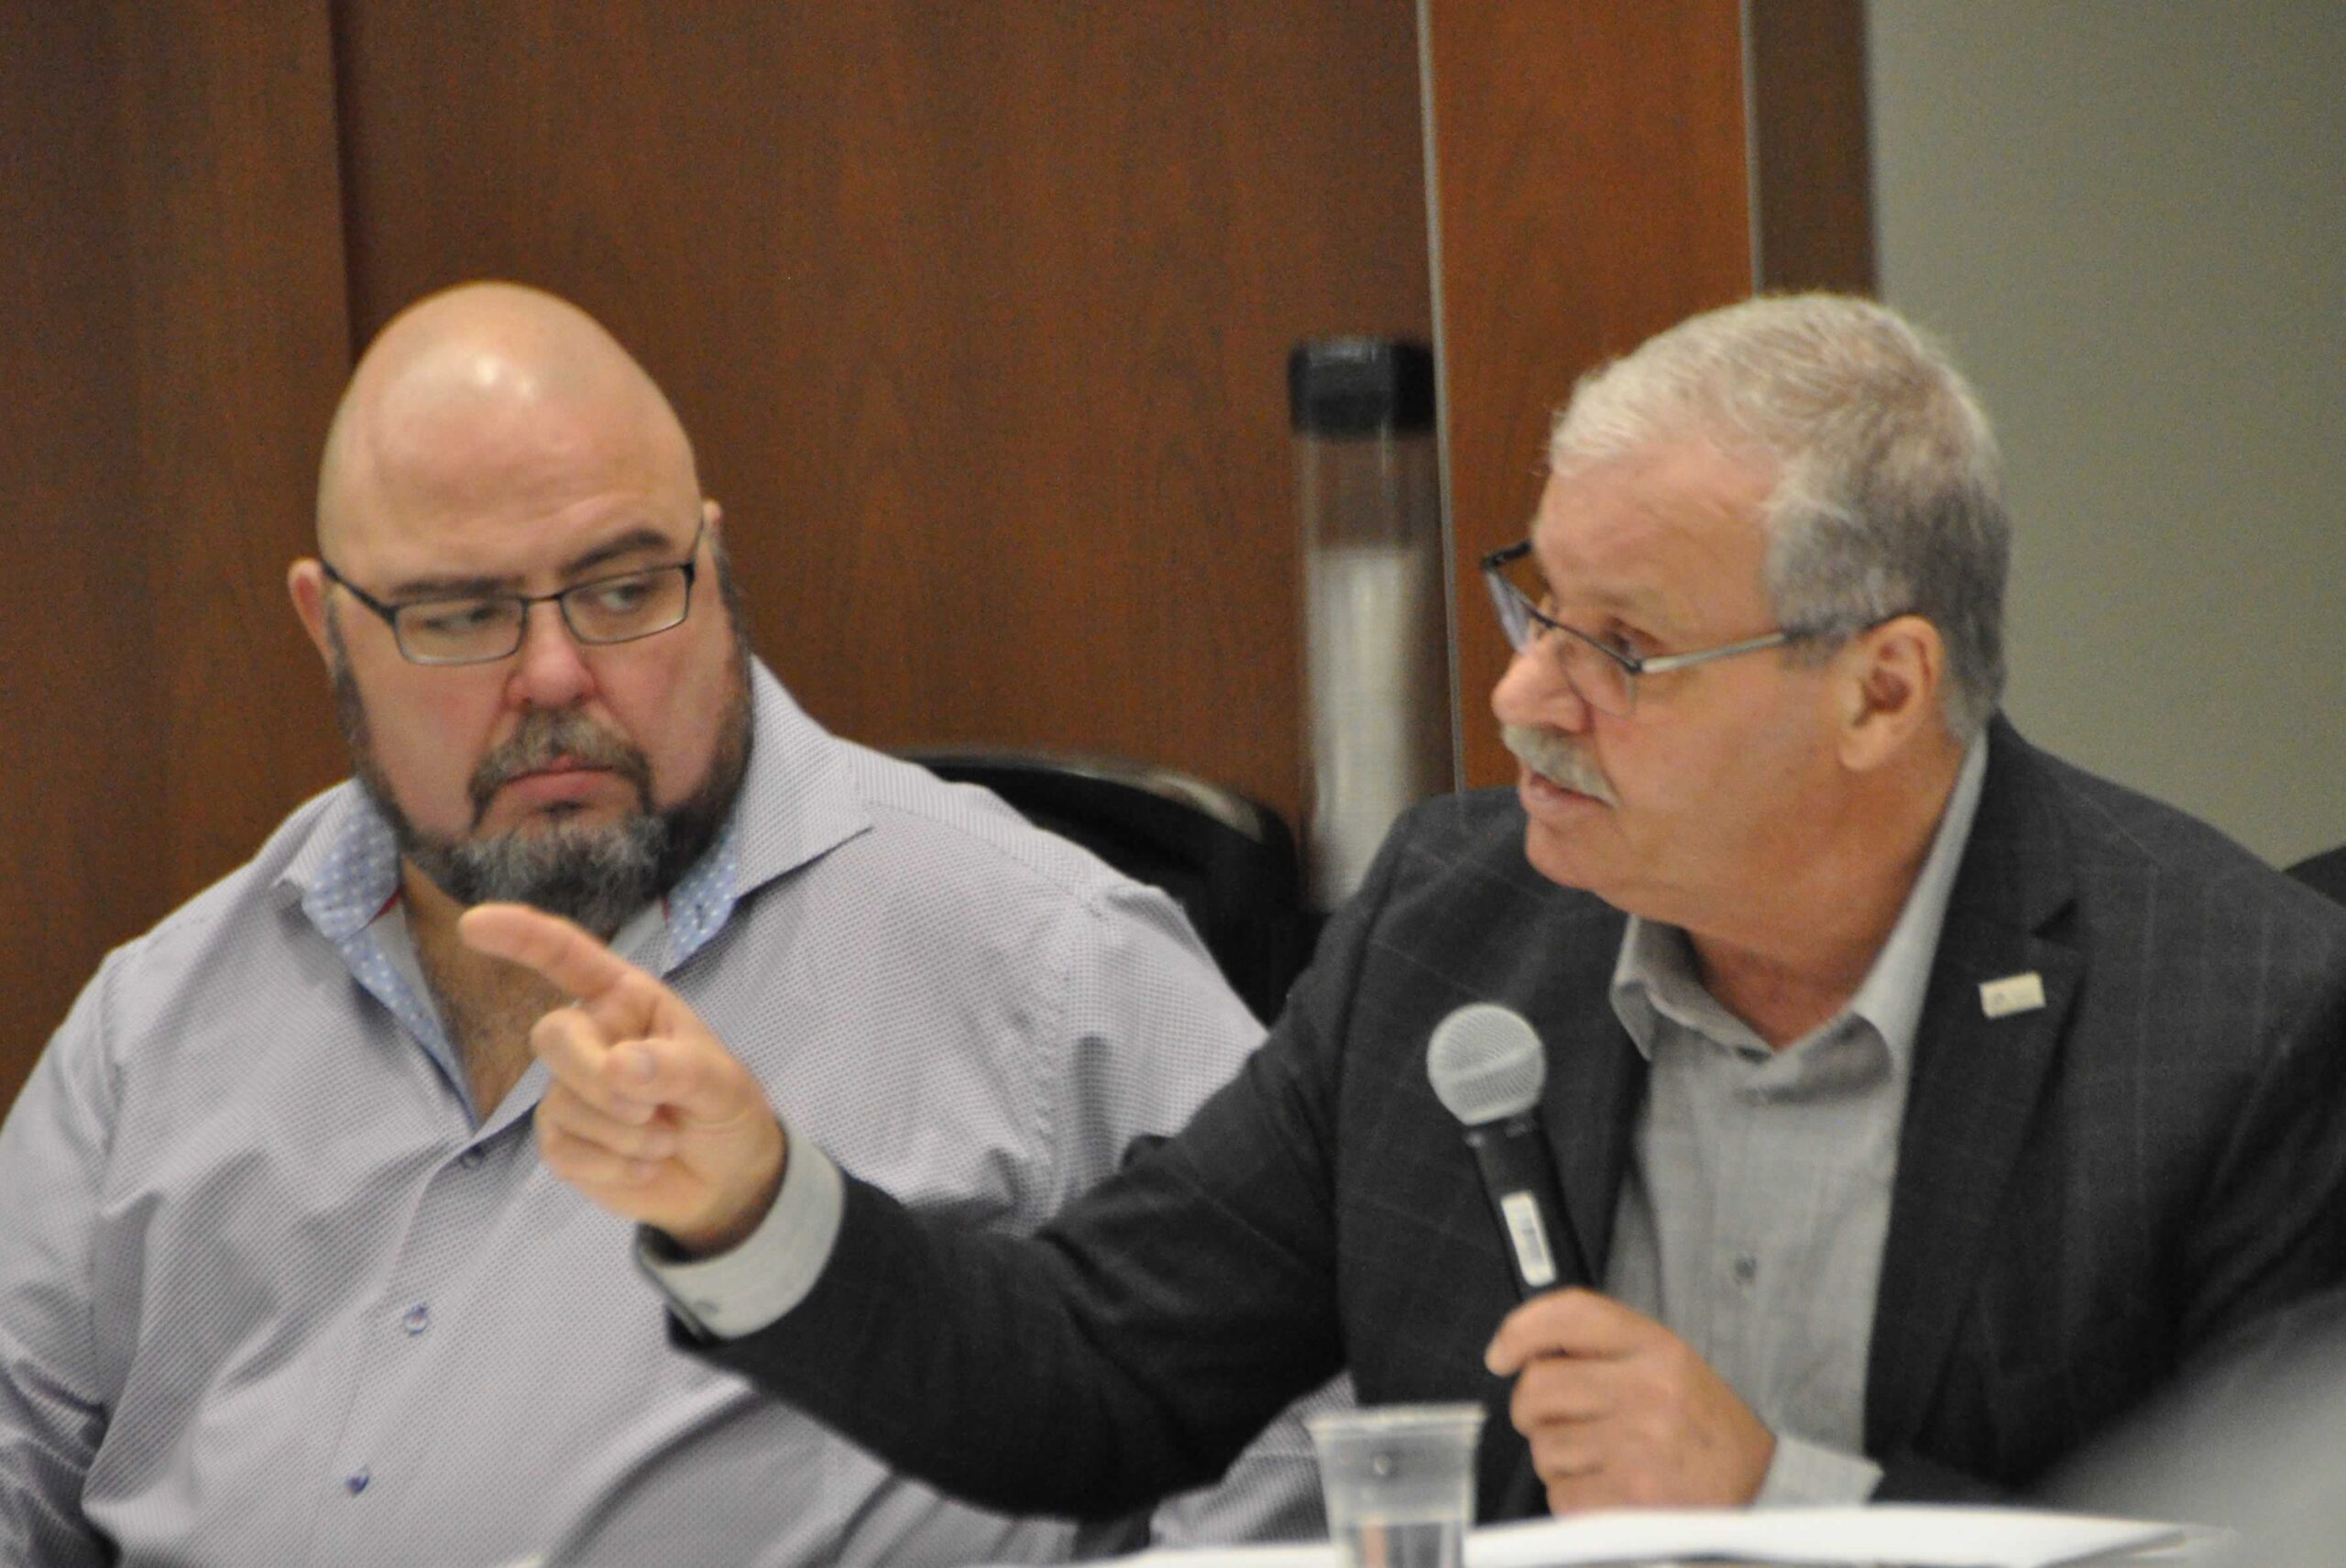 OPSEU President Warren (Smokey) Thomas speaks into a microphone and gestures during the Ford government's public sector consultations.